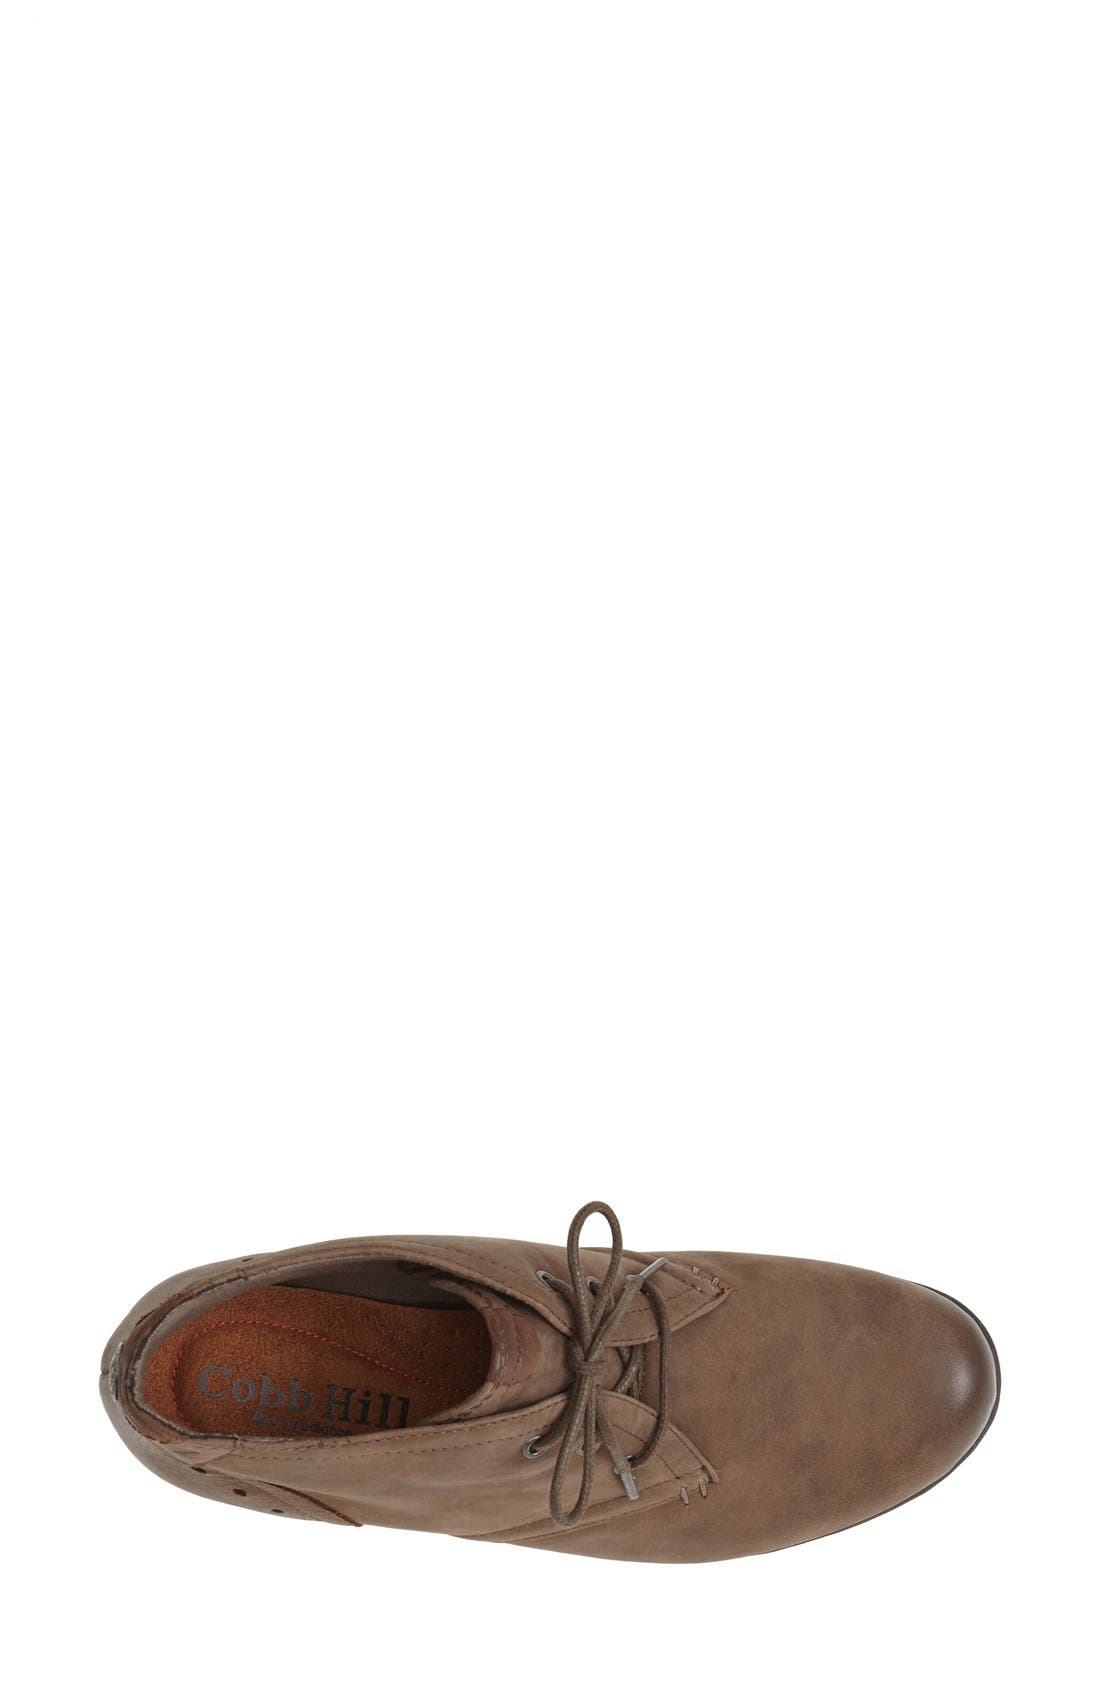 ROCKPORT COBB HILL, Aria Leather Boot, Alternate thumbnail 4, color, STONE